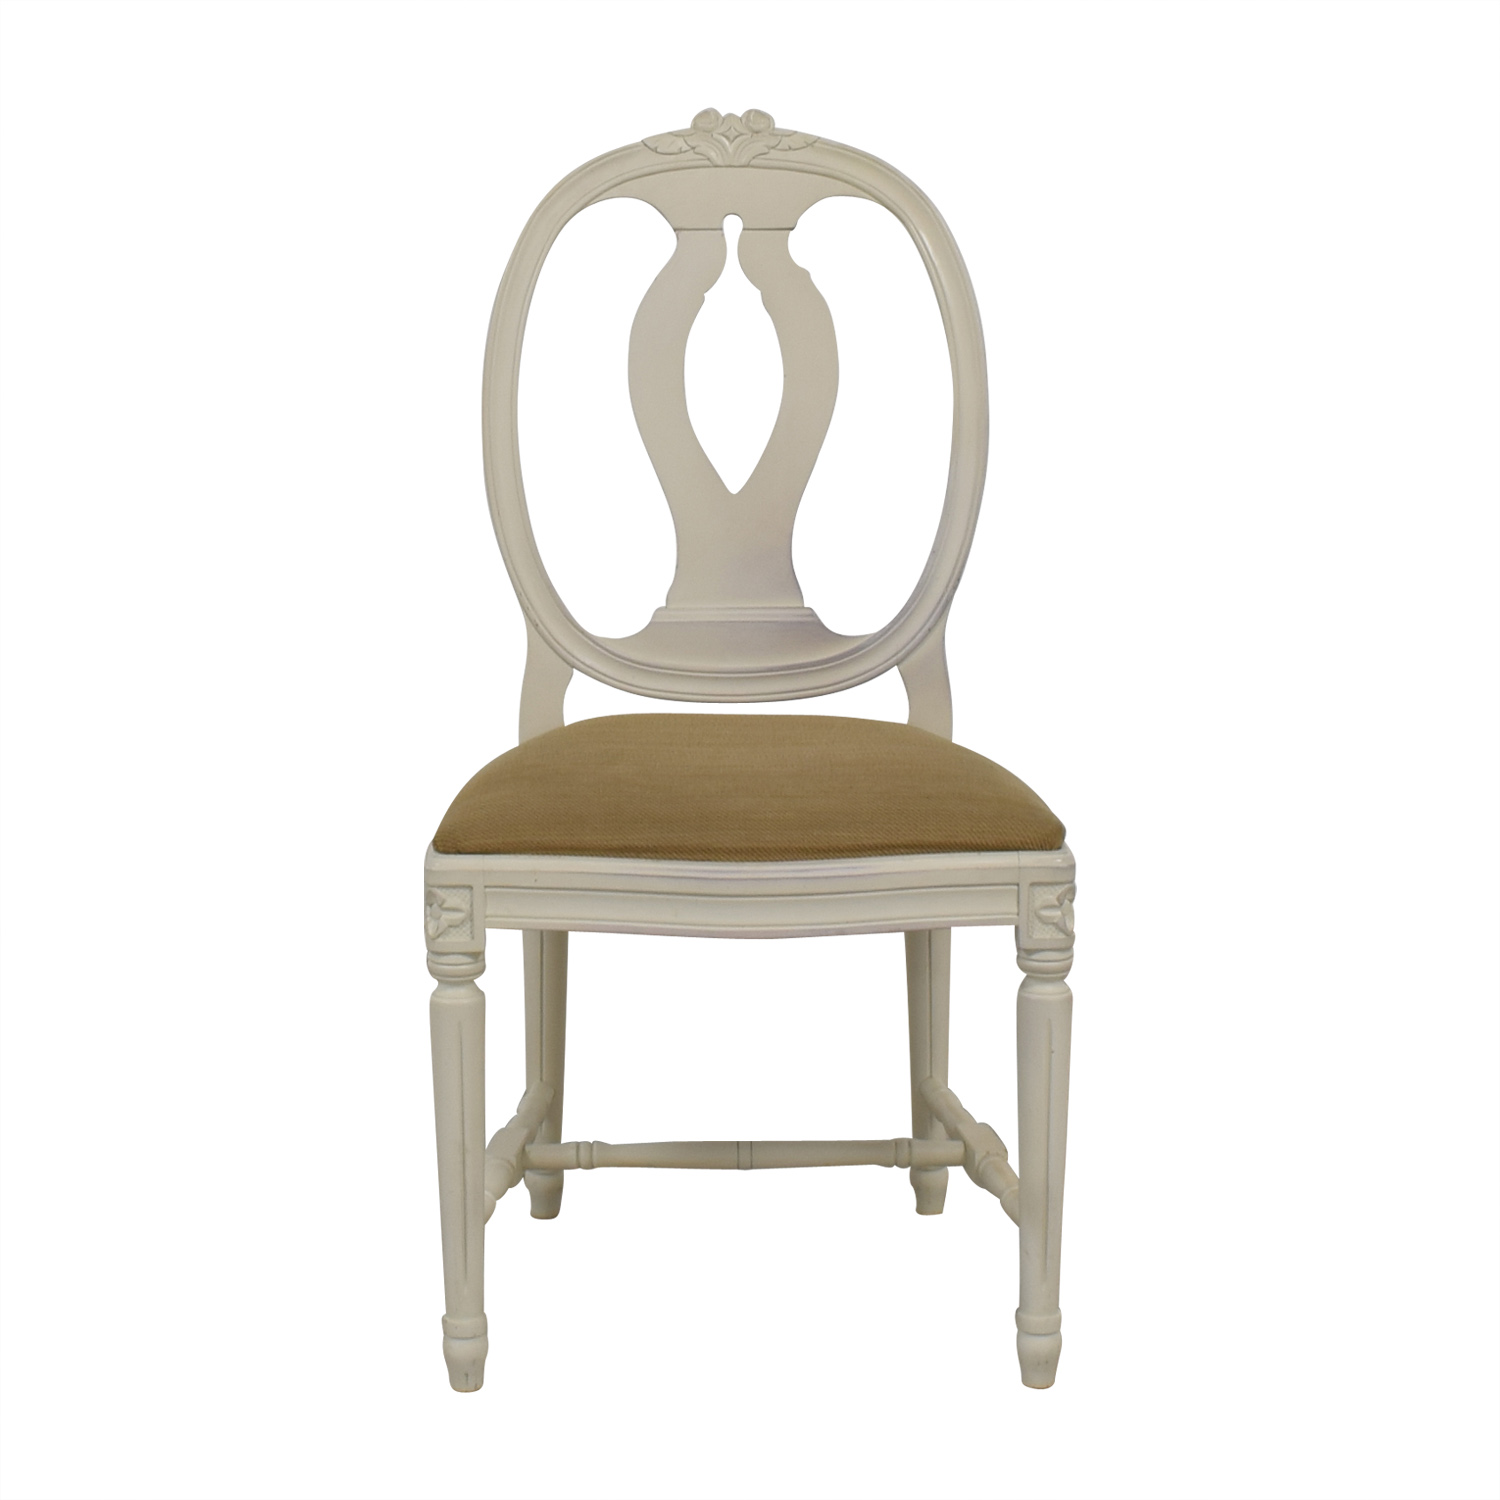 Swedish Blond Swedish Blond Country Distressed Cream Chair price